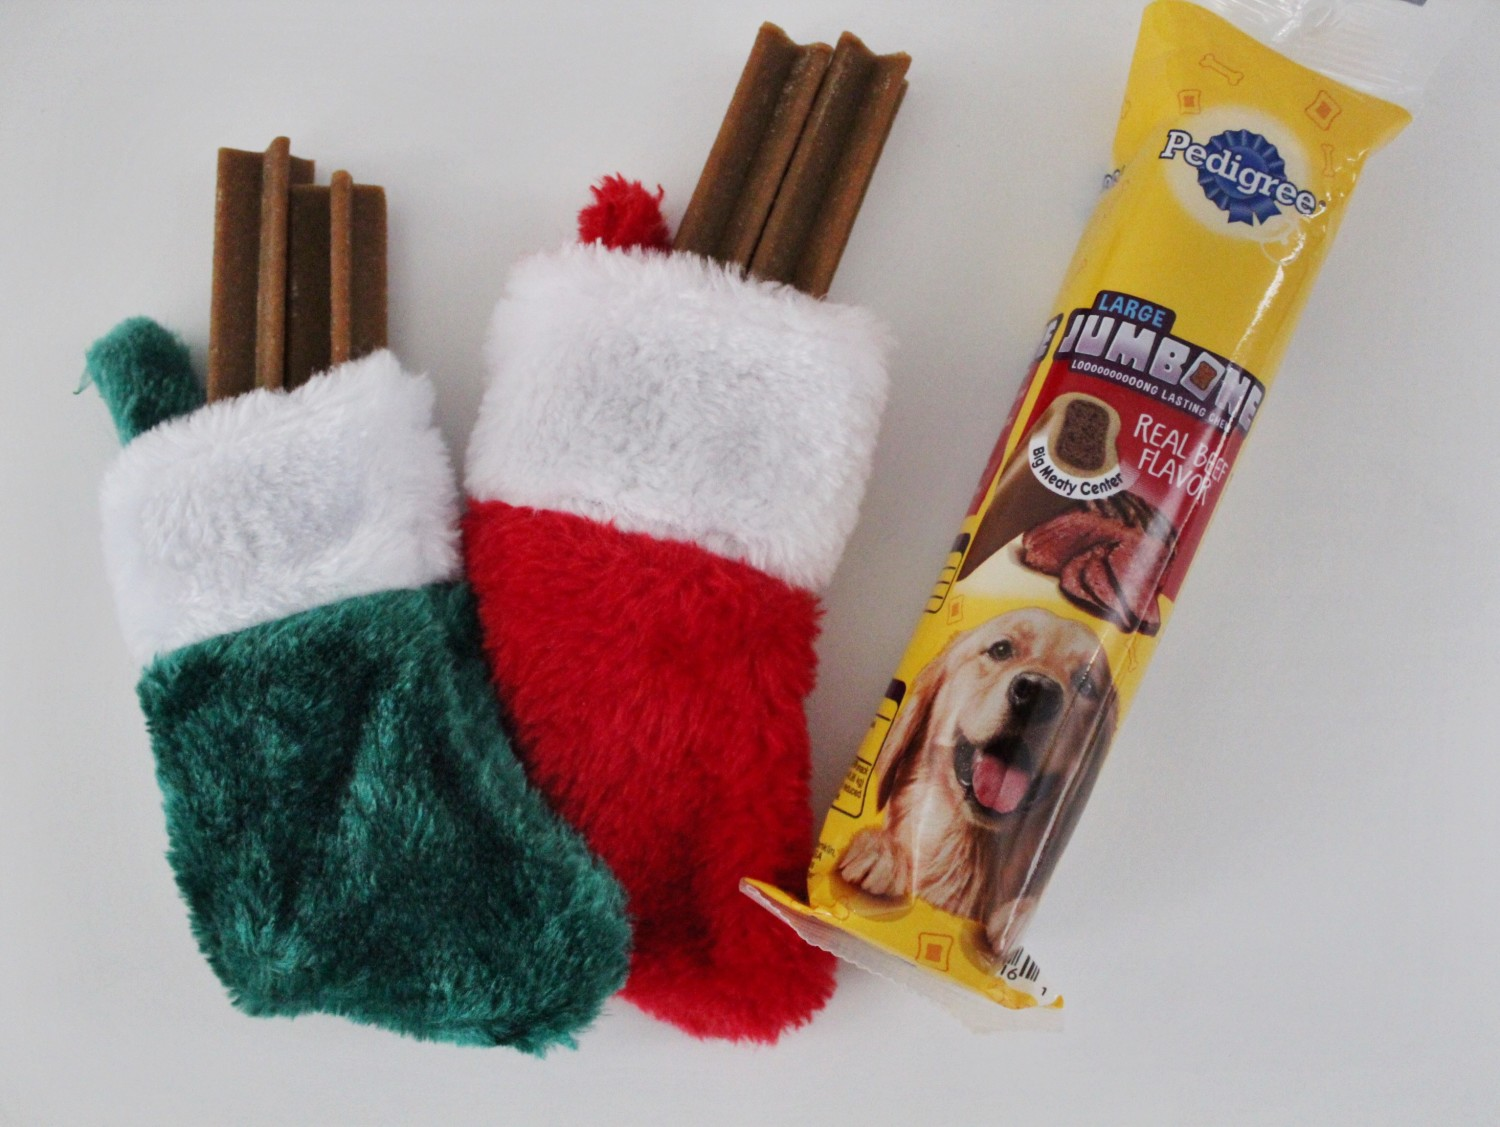 Pedigree Christmas Presents for Dogs